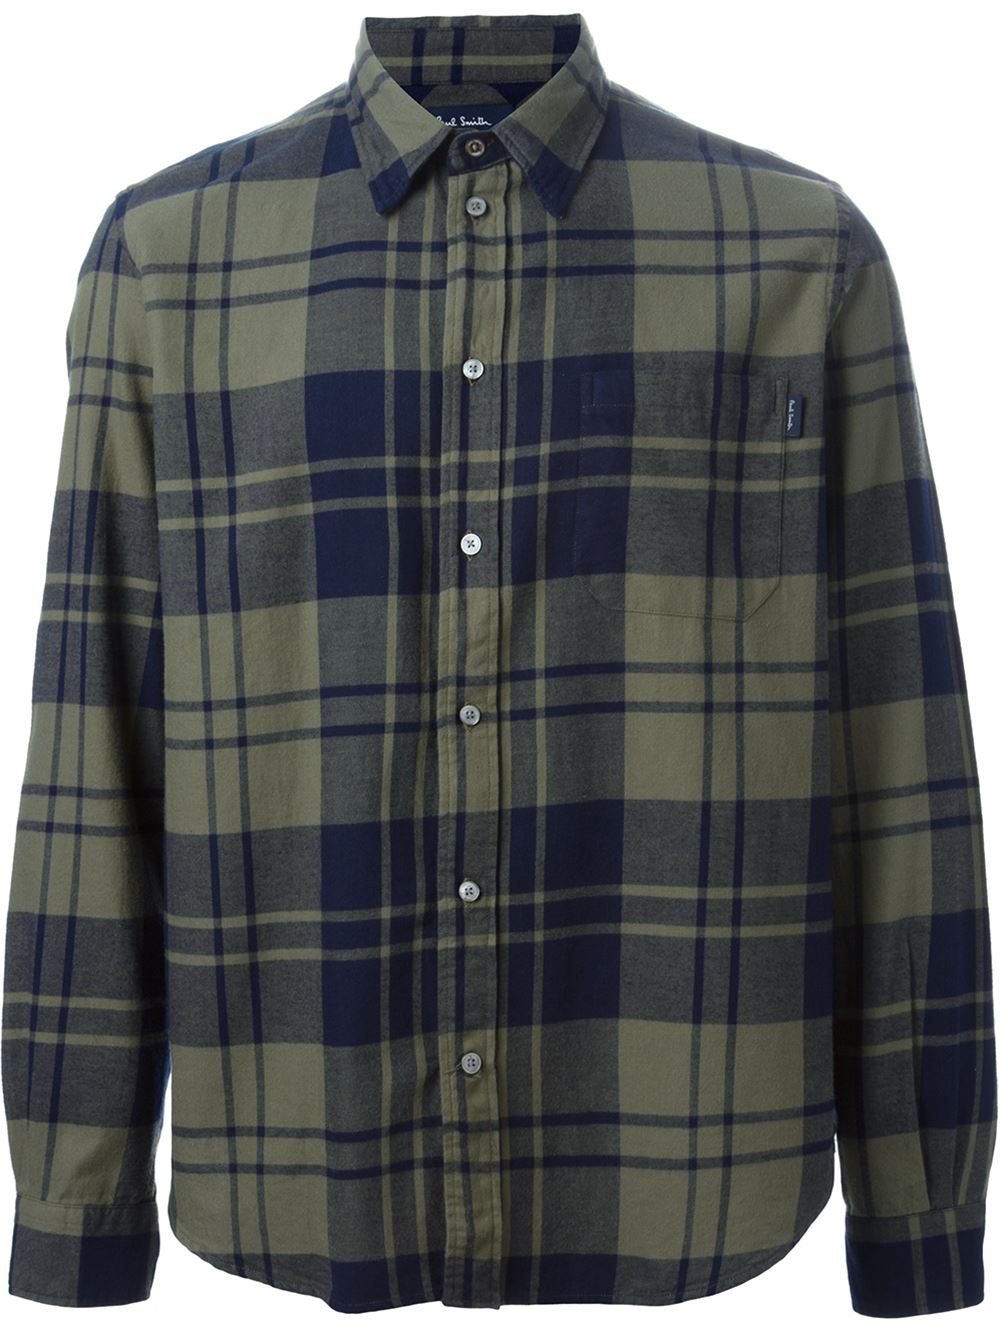 Lyst Paul Smith Plaid Flannel Shirt In Green For Men